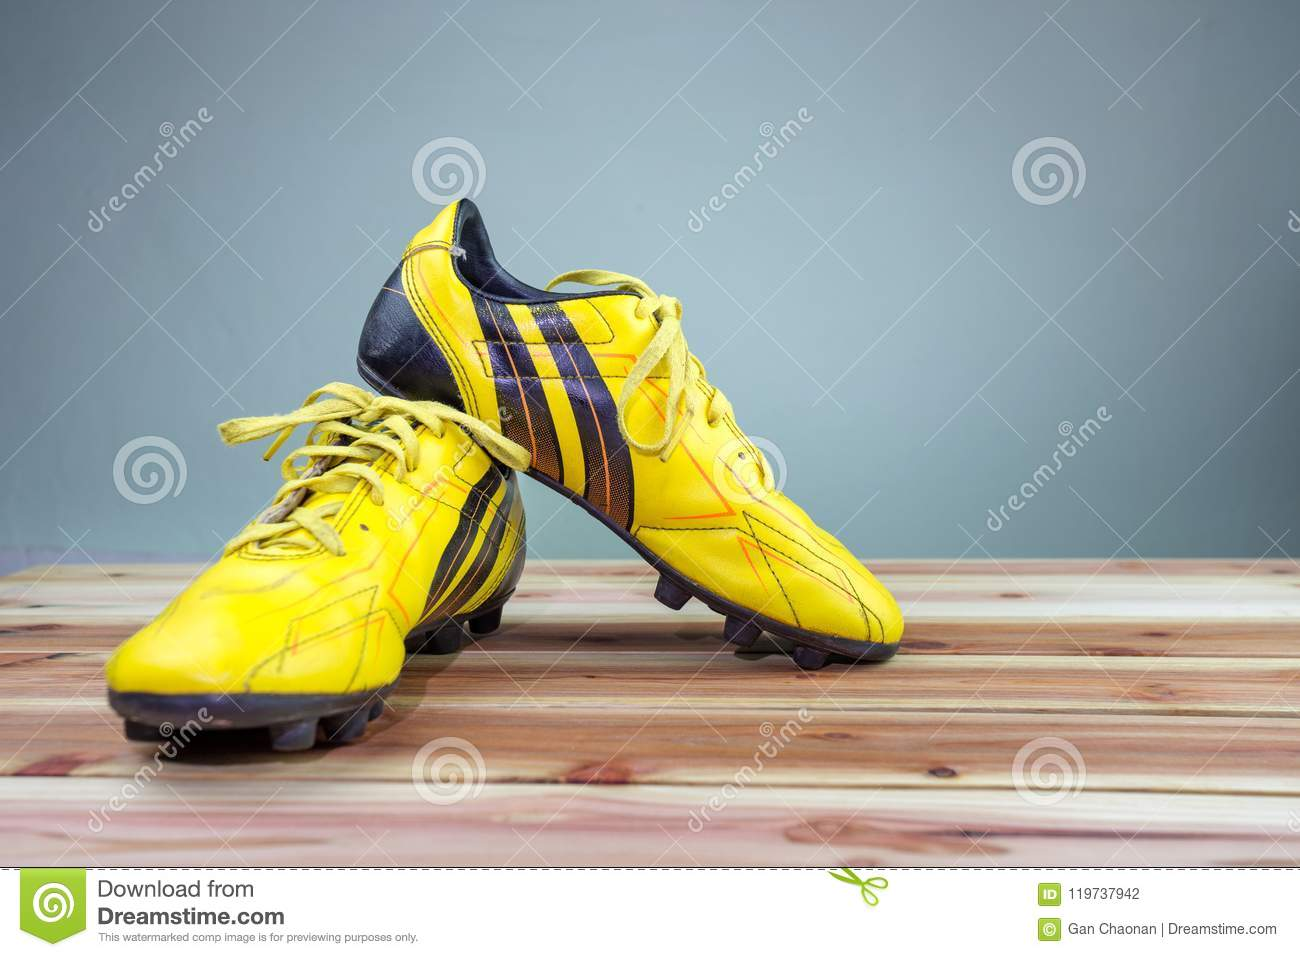 81494ed6f A pair of old football boots old yellow football shoes placed on a wooden  board, gray background Soft light